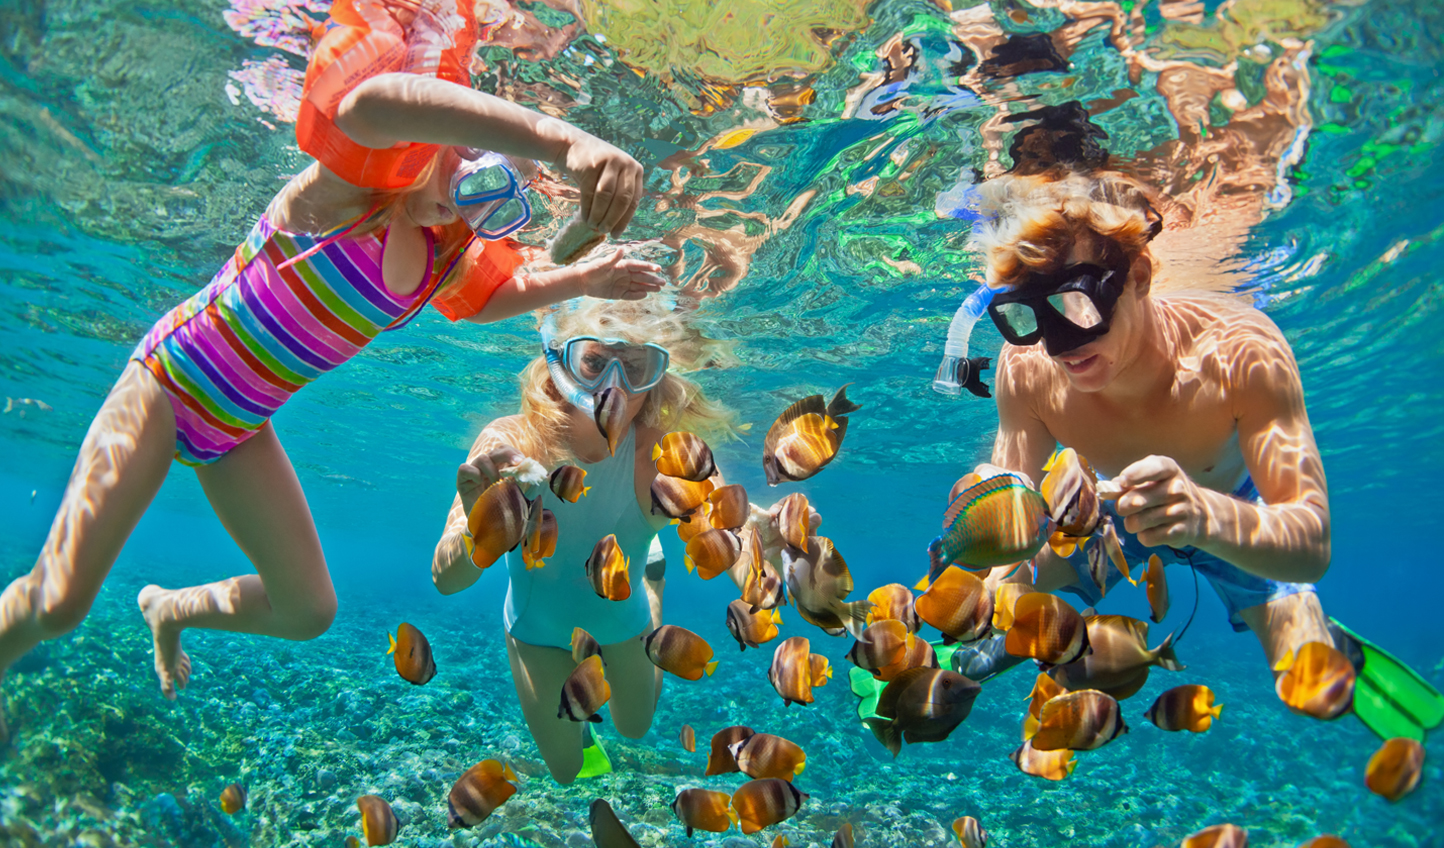 The Rosario Islands have vibrant reefs full of colourful marine life